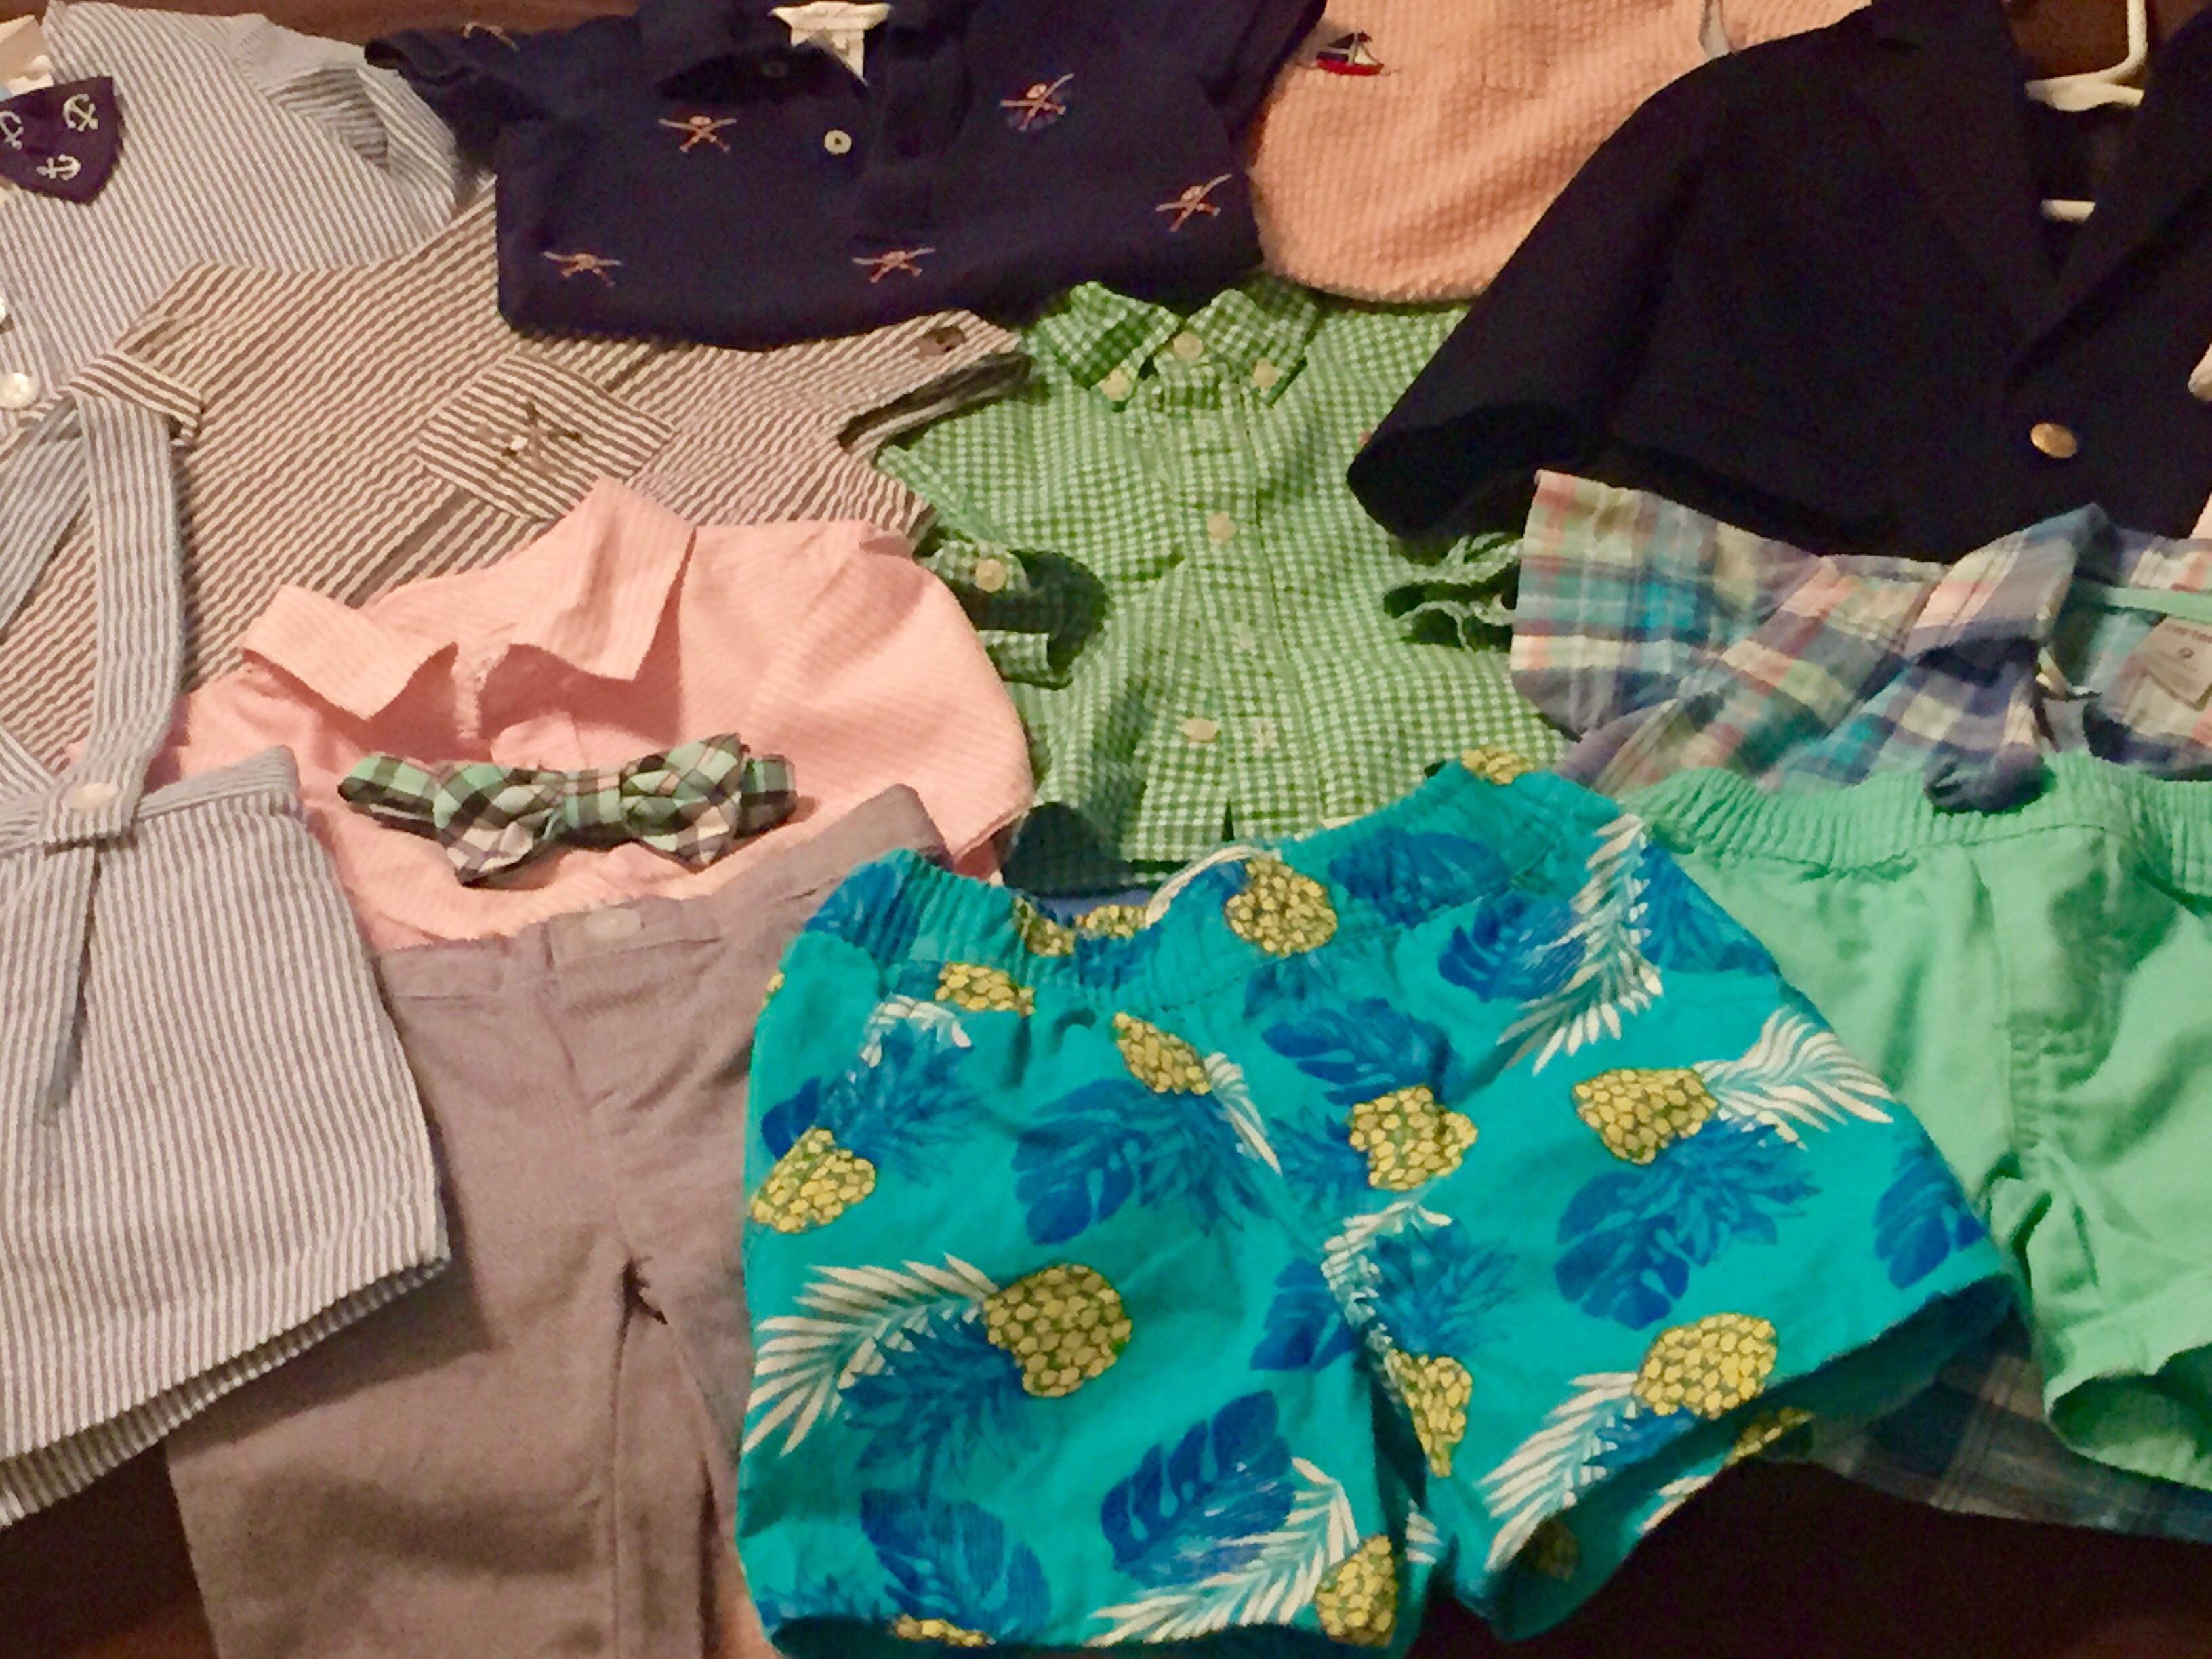 5 Tips to Effortless Baby Packing